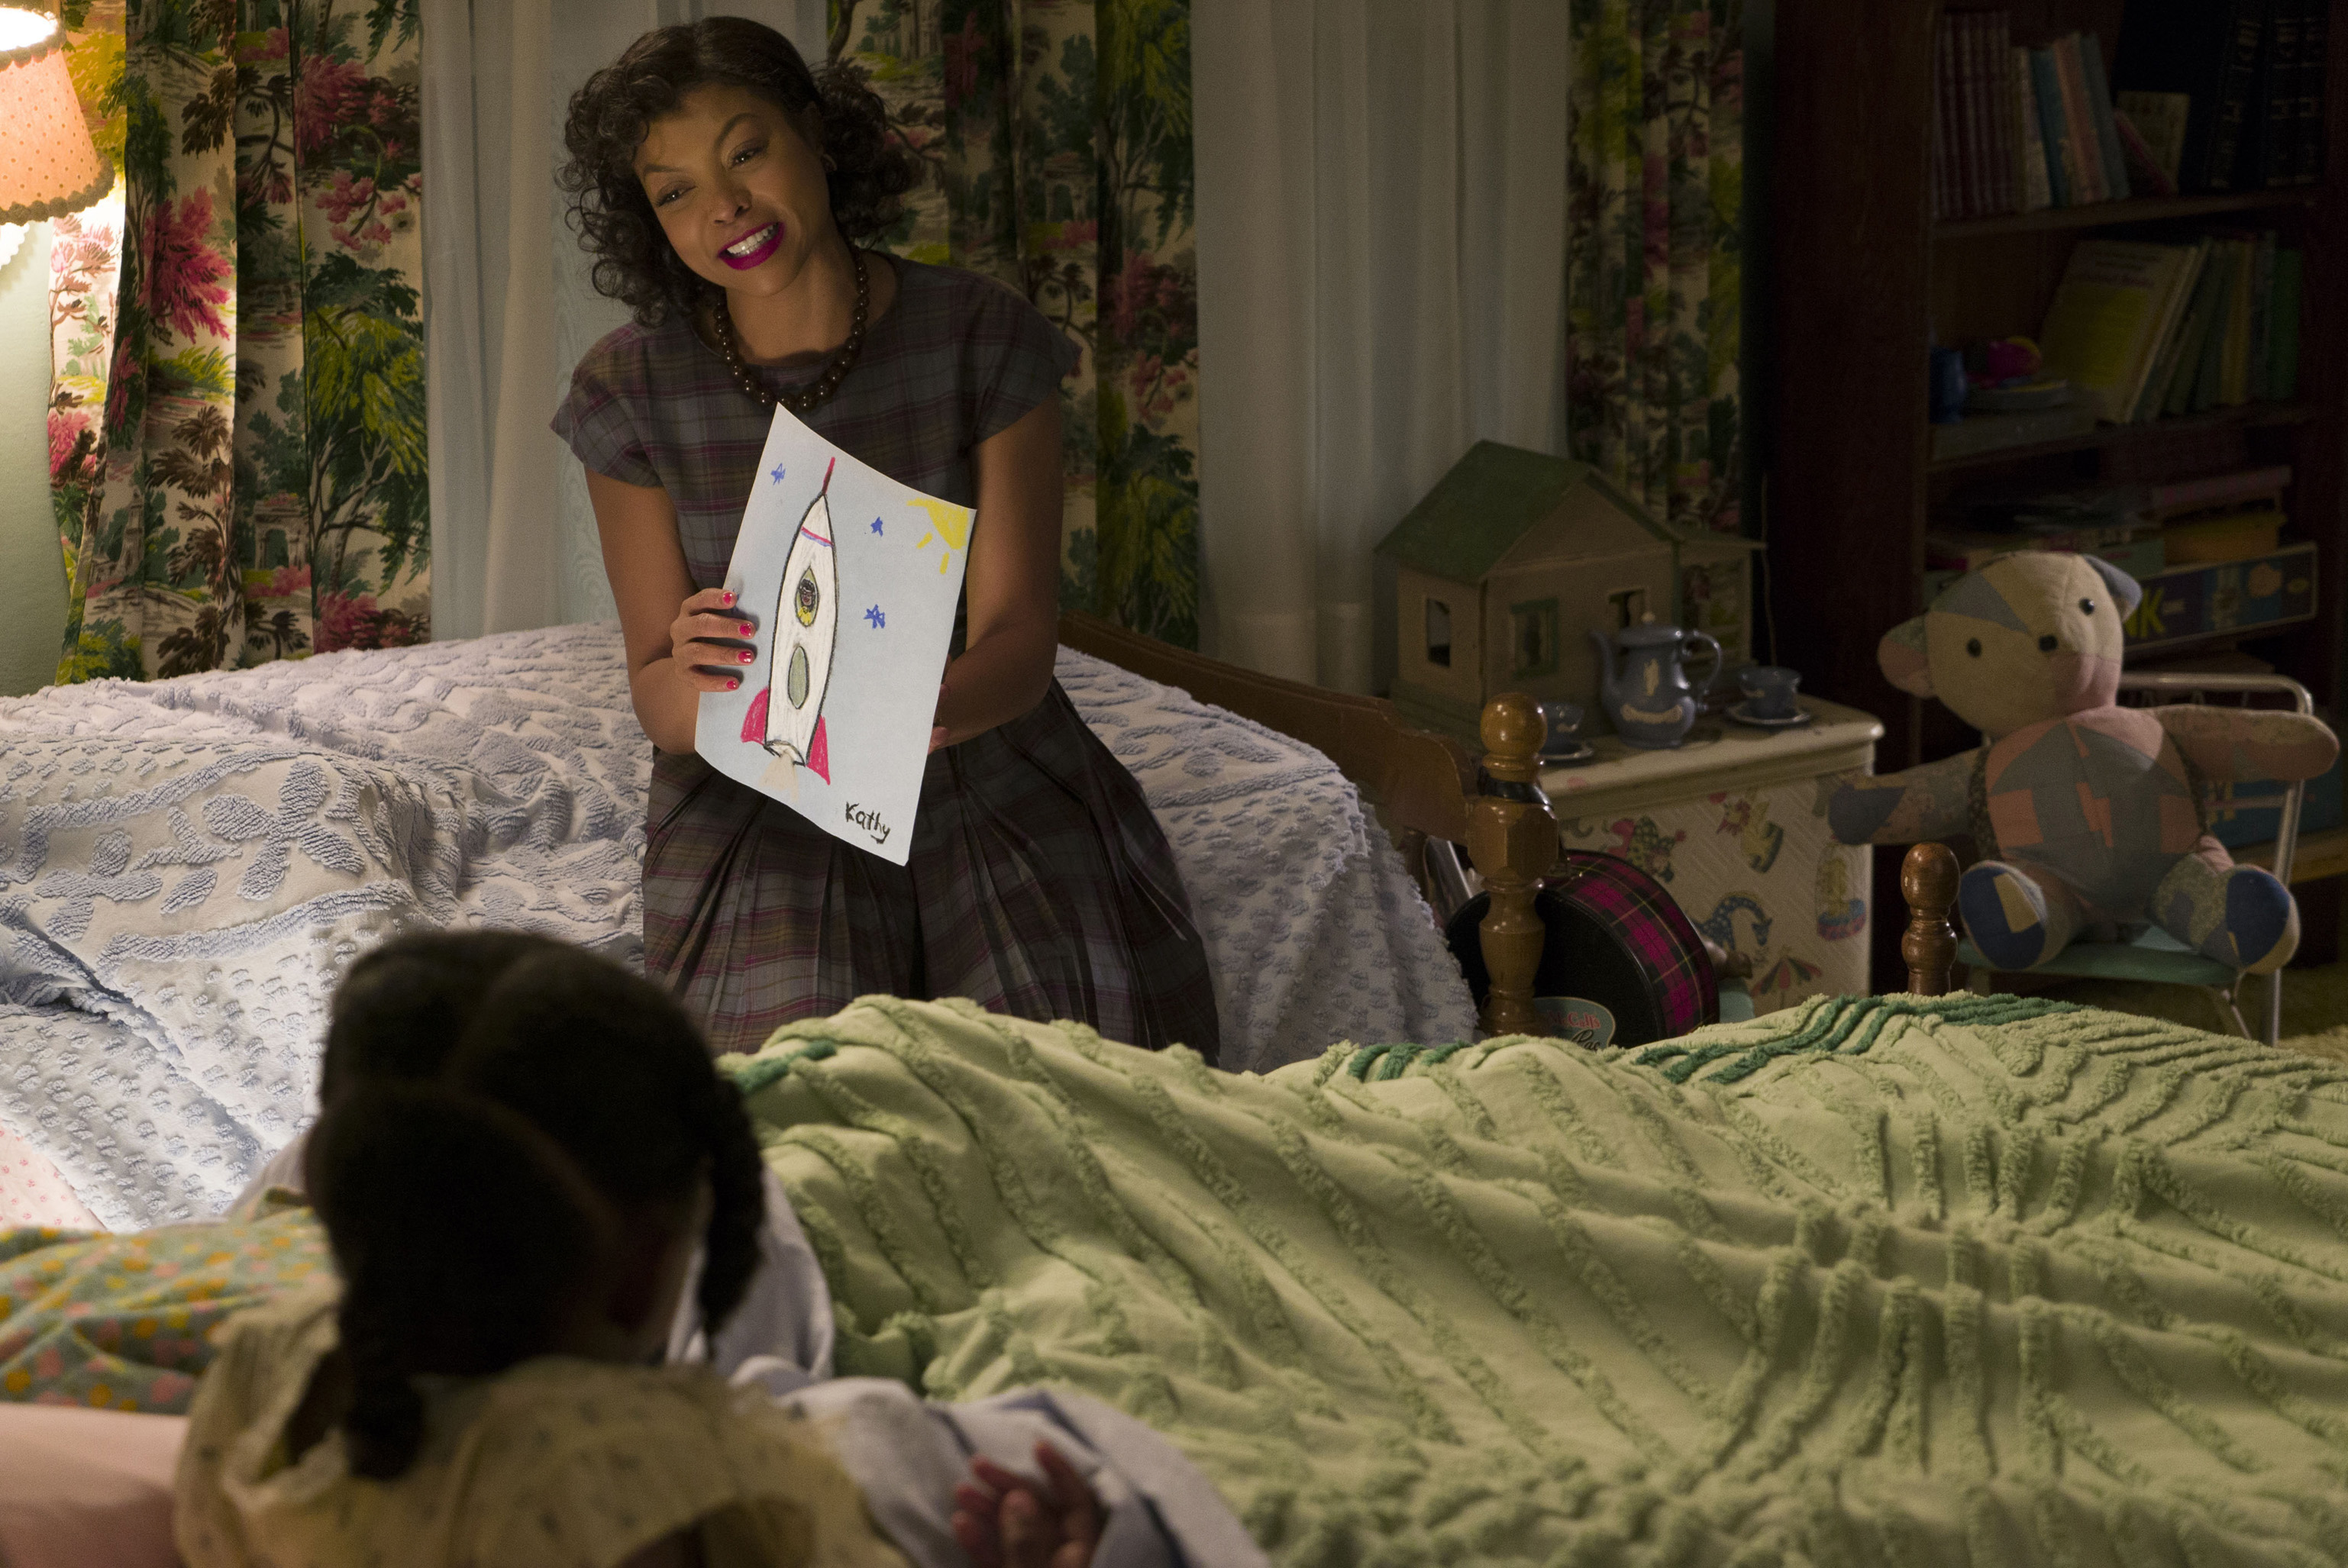 DF-02518_R - Taraji P. Henson stars as Katherine Johnson in HIDDEN FIGURES. Photo Credit: Hopper Stone.